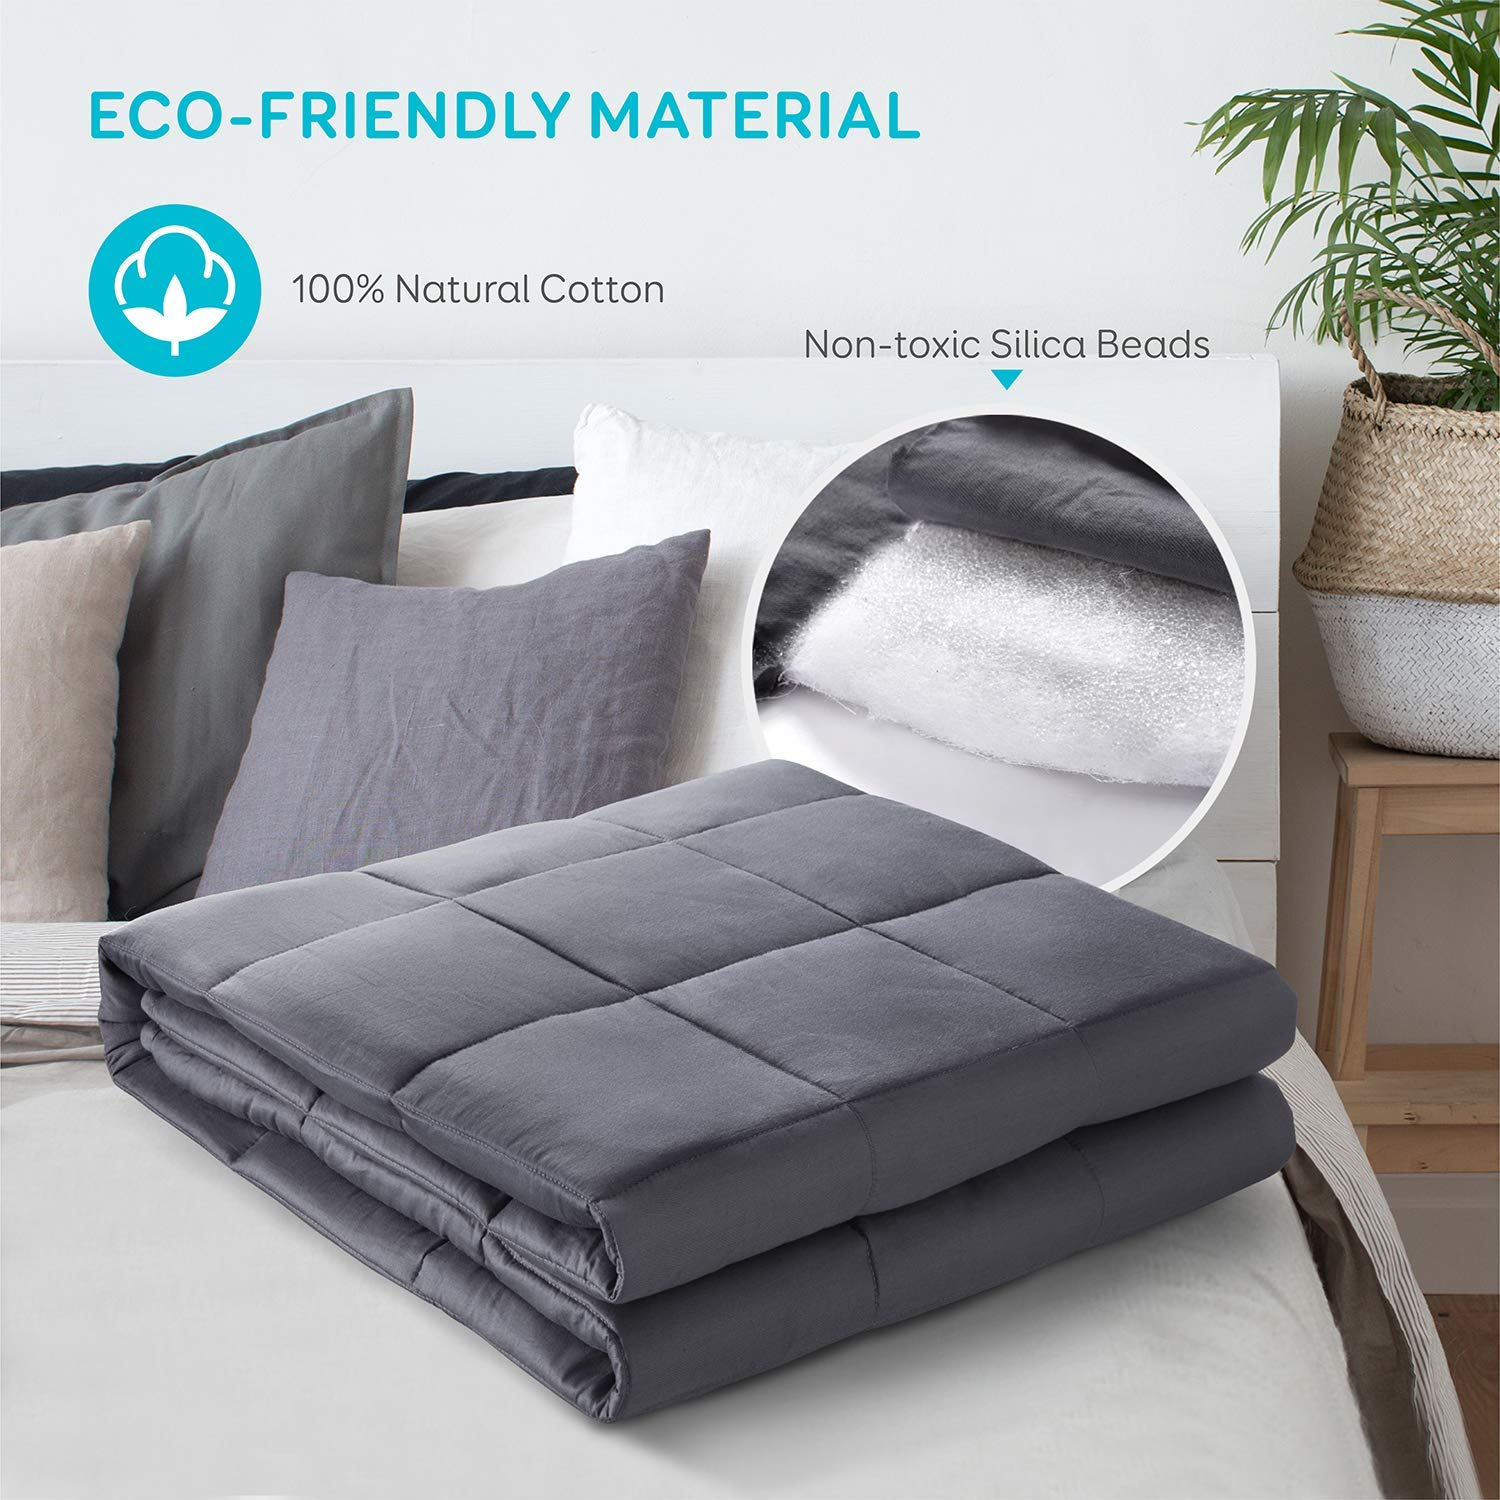 online selling  breathable  organic cotton fabric washable bonded fiber & glass beads filling gravity weighted blanket / quilt